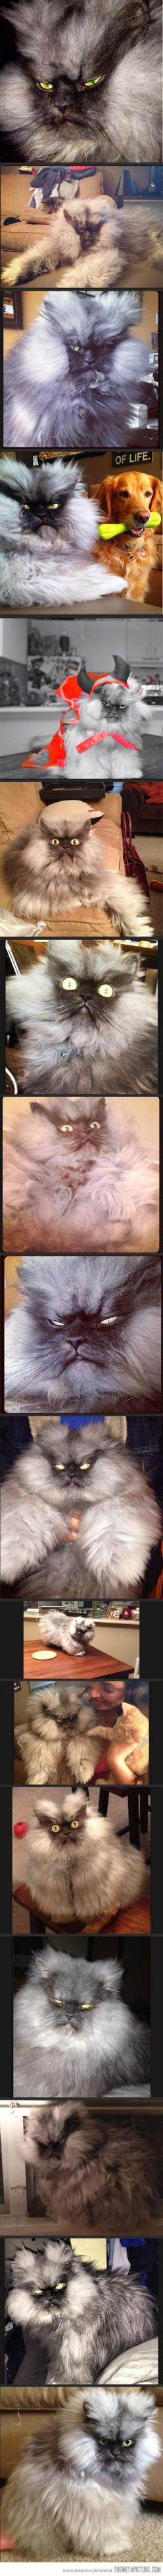 The most glorious angry cat that has ever existed…he's probably so grumpy because he has so much hair...: Cats, Animals, Evil Cat, Glorious Angry, Second Angry, Angry Cat, Funny, Grumpy Cat